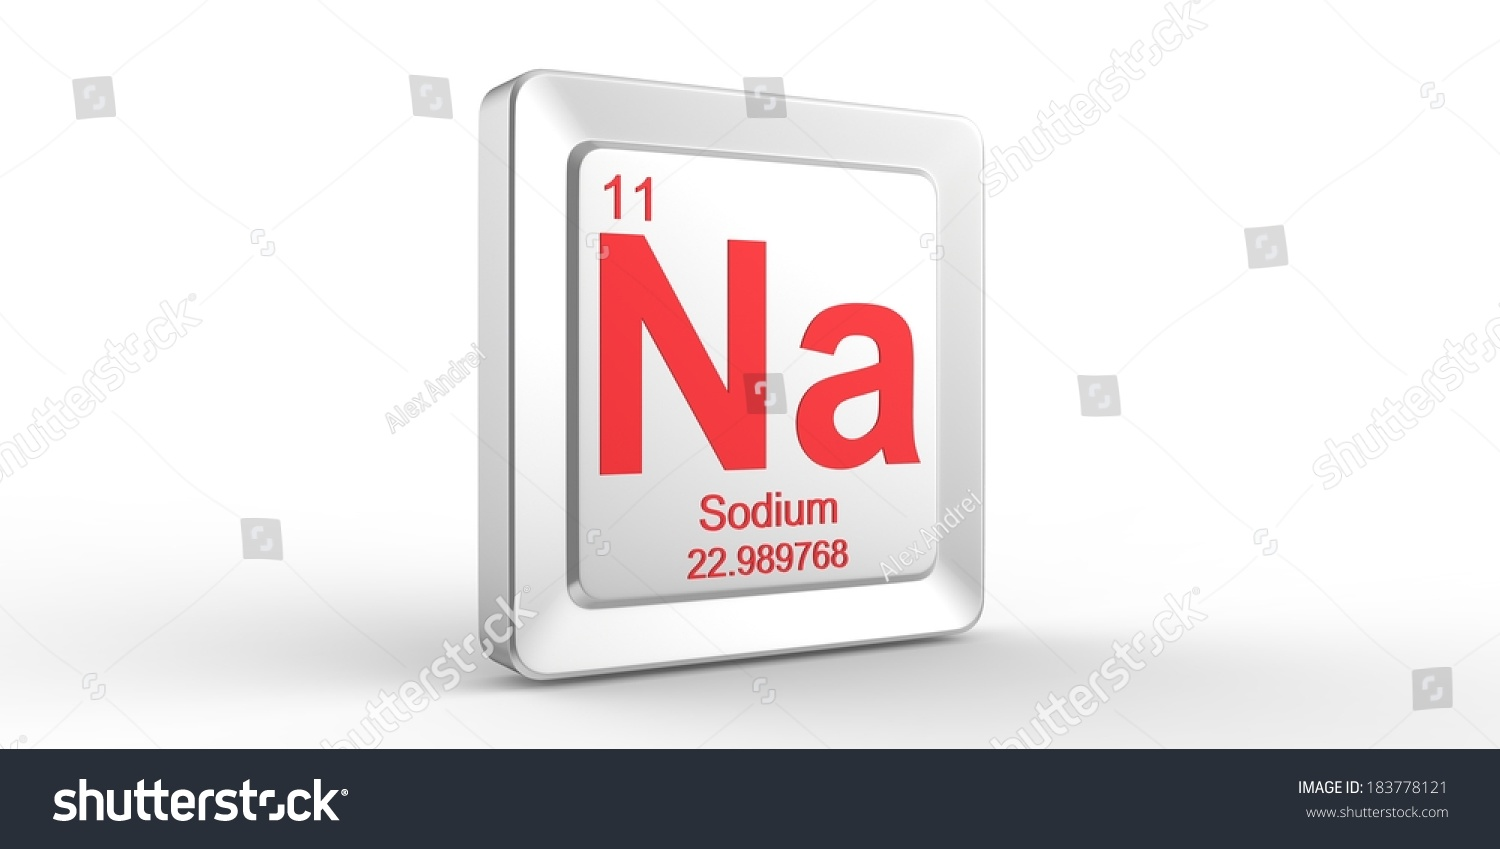 Na symbol 11 material sodium chemical stock illustration 183778121 na symbol 11 material for sodium chemical element of the periodic table biocorpaavc Choice Image